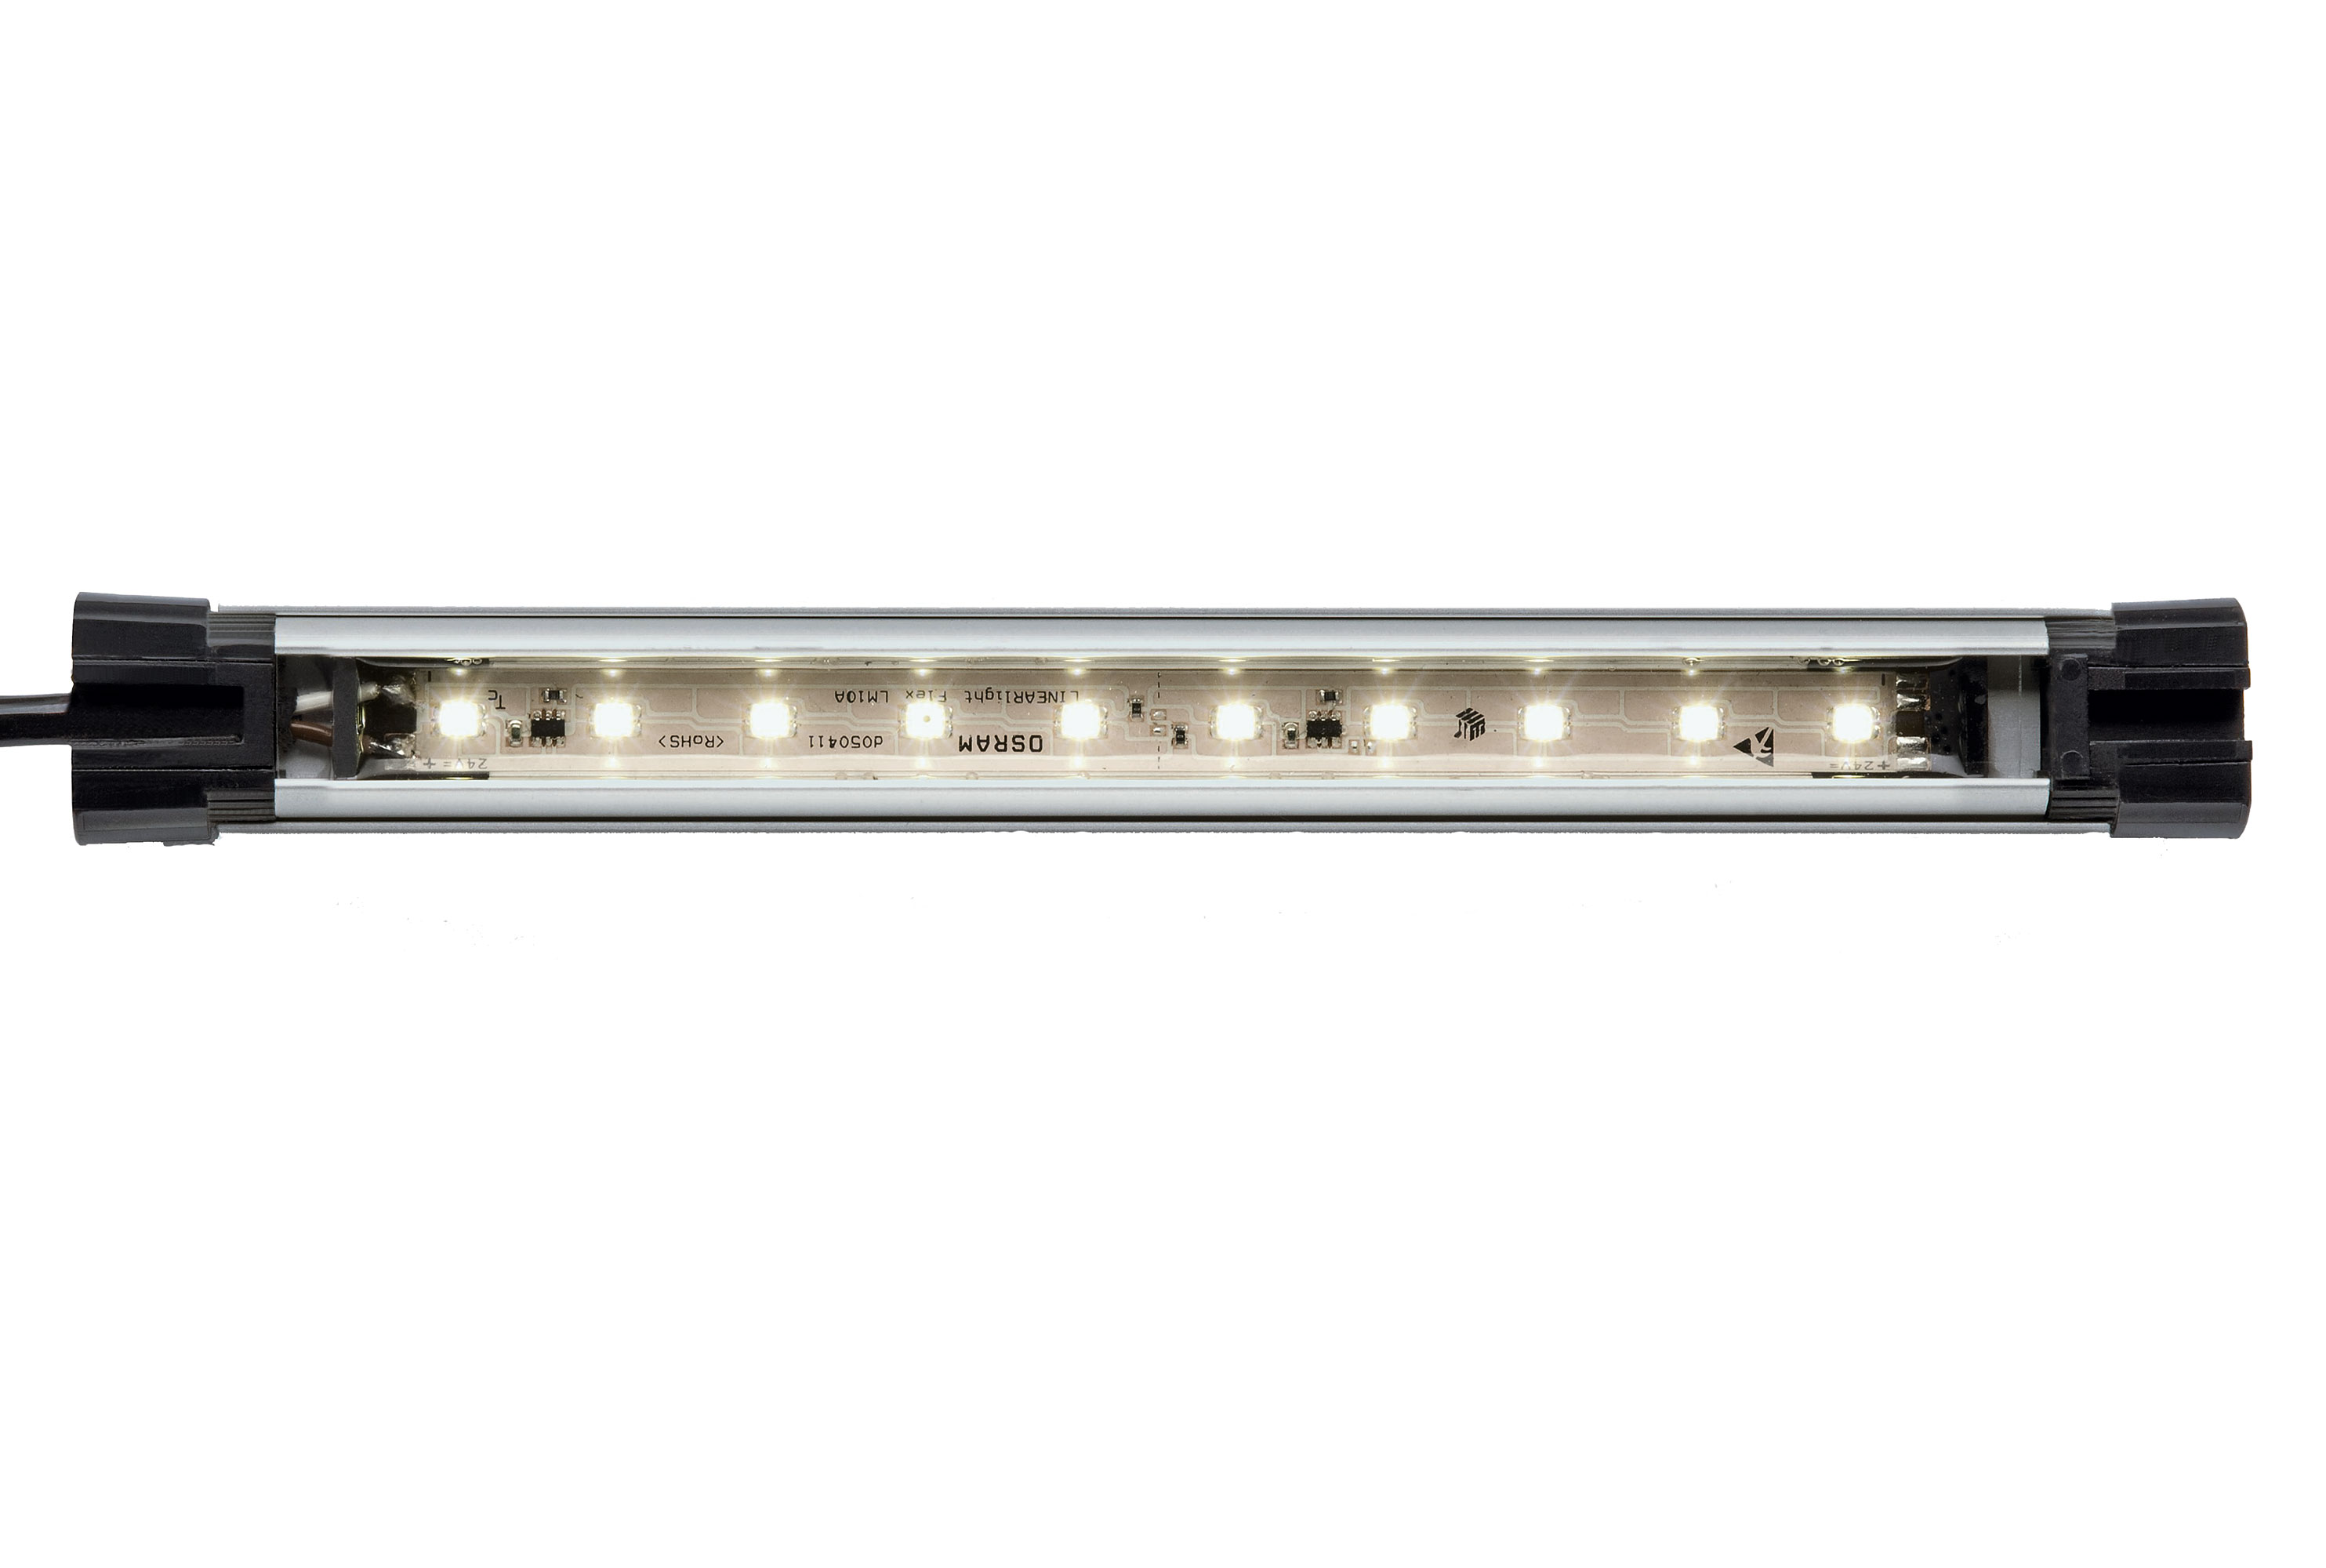 Светильник накладной SLIM LED LIQ 48 (LED 28Вт/1176мм/DC 22-29В/сатин. акрил;регулир. наклон;IP67)